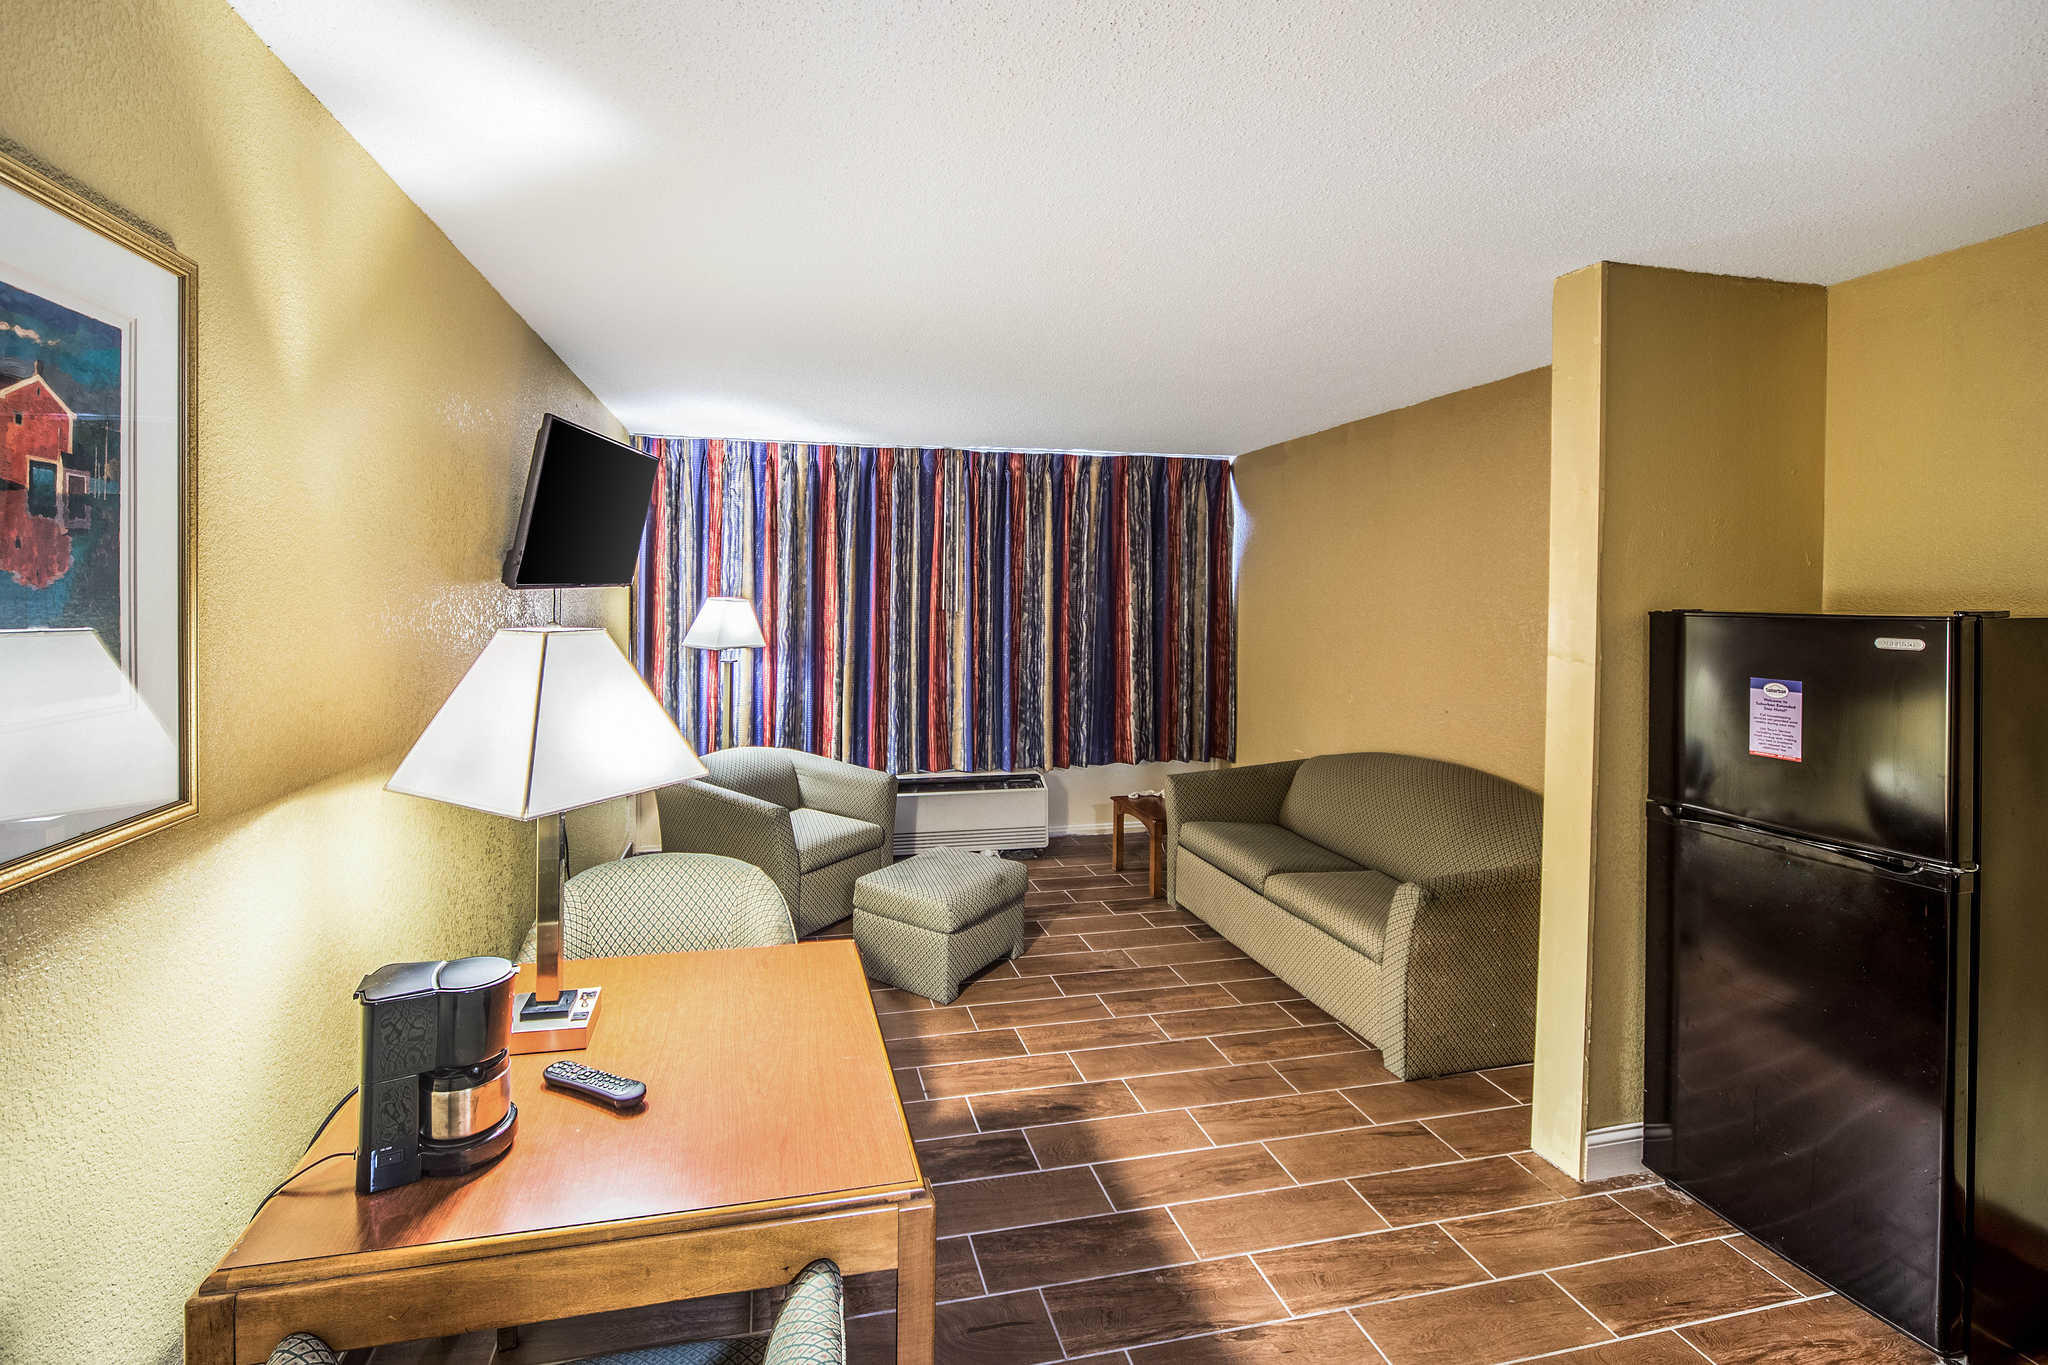 Suburban Extended Stay Hotel image 9